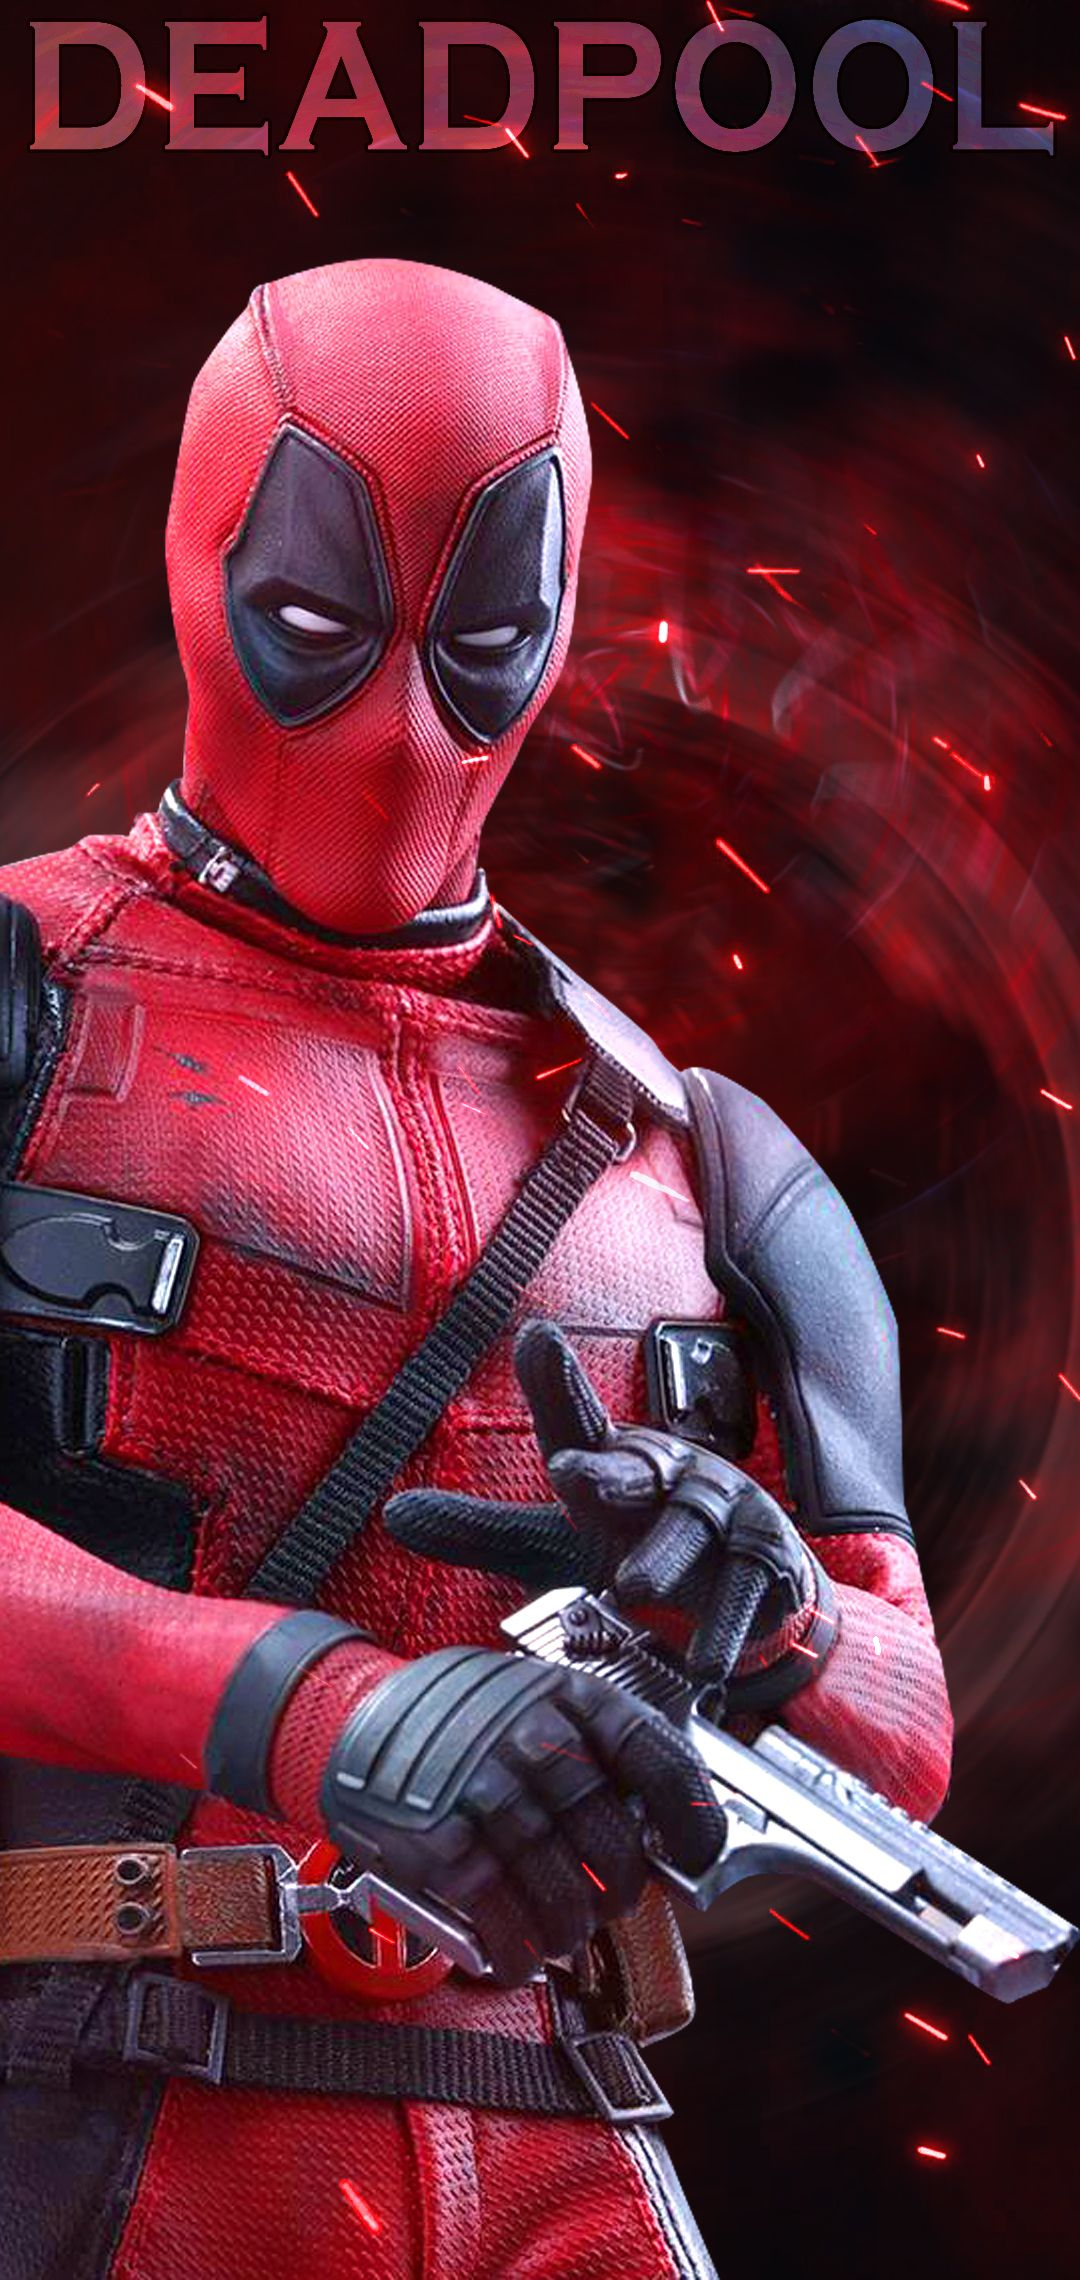 Deadpool Fhd Wallpaper For Iphone And Android Devices Deadpool Hd Wallpaper Deadpool Hd Hd Wallpaper Iphone Deadpool hd wallpaper mobile